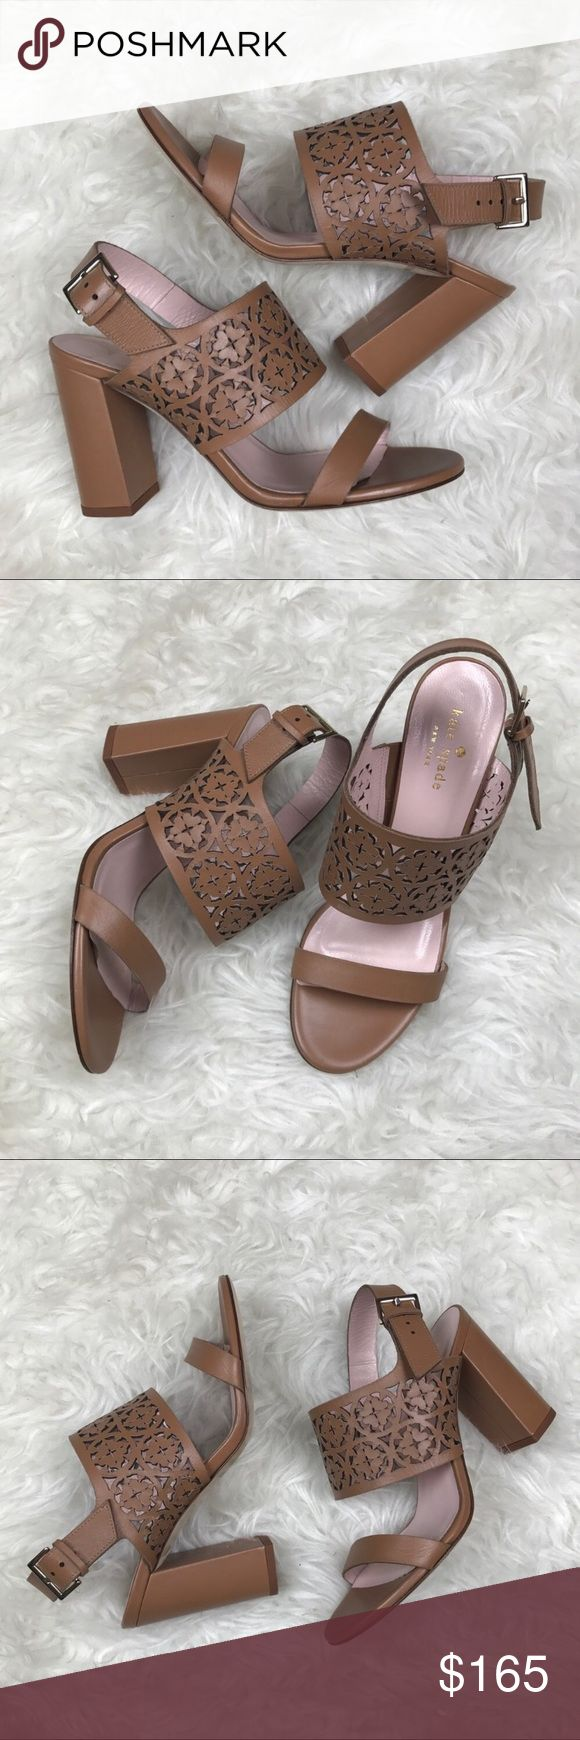 """Kate Spade Imani heels Kate Spade Imani heels. 3 1/2"""" heel. Beautiful laser cut floral thick straps.  Adjustable ankle straps. Last pic shows slight scuff on heel kate spade Shoes"""